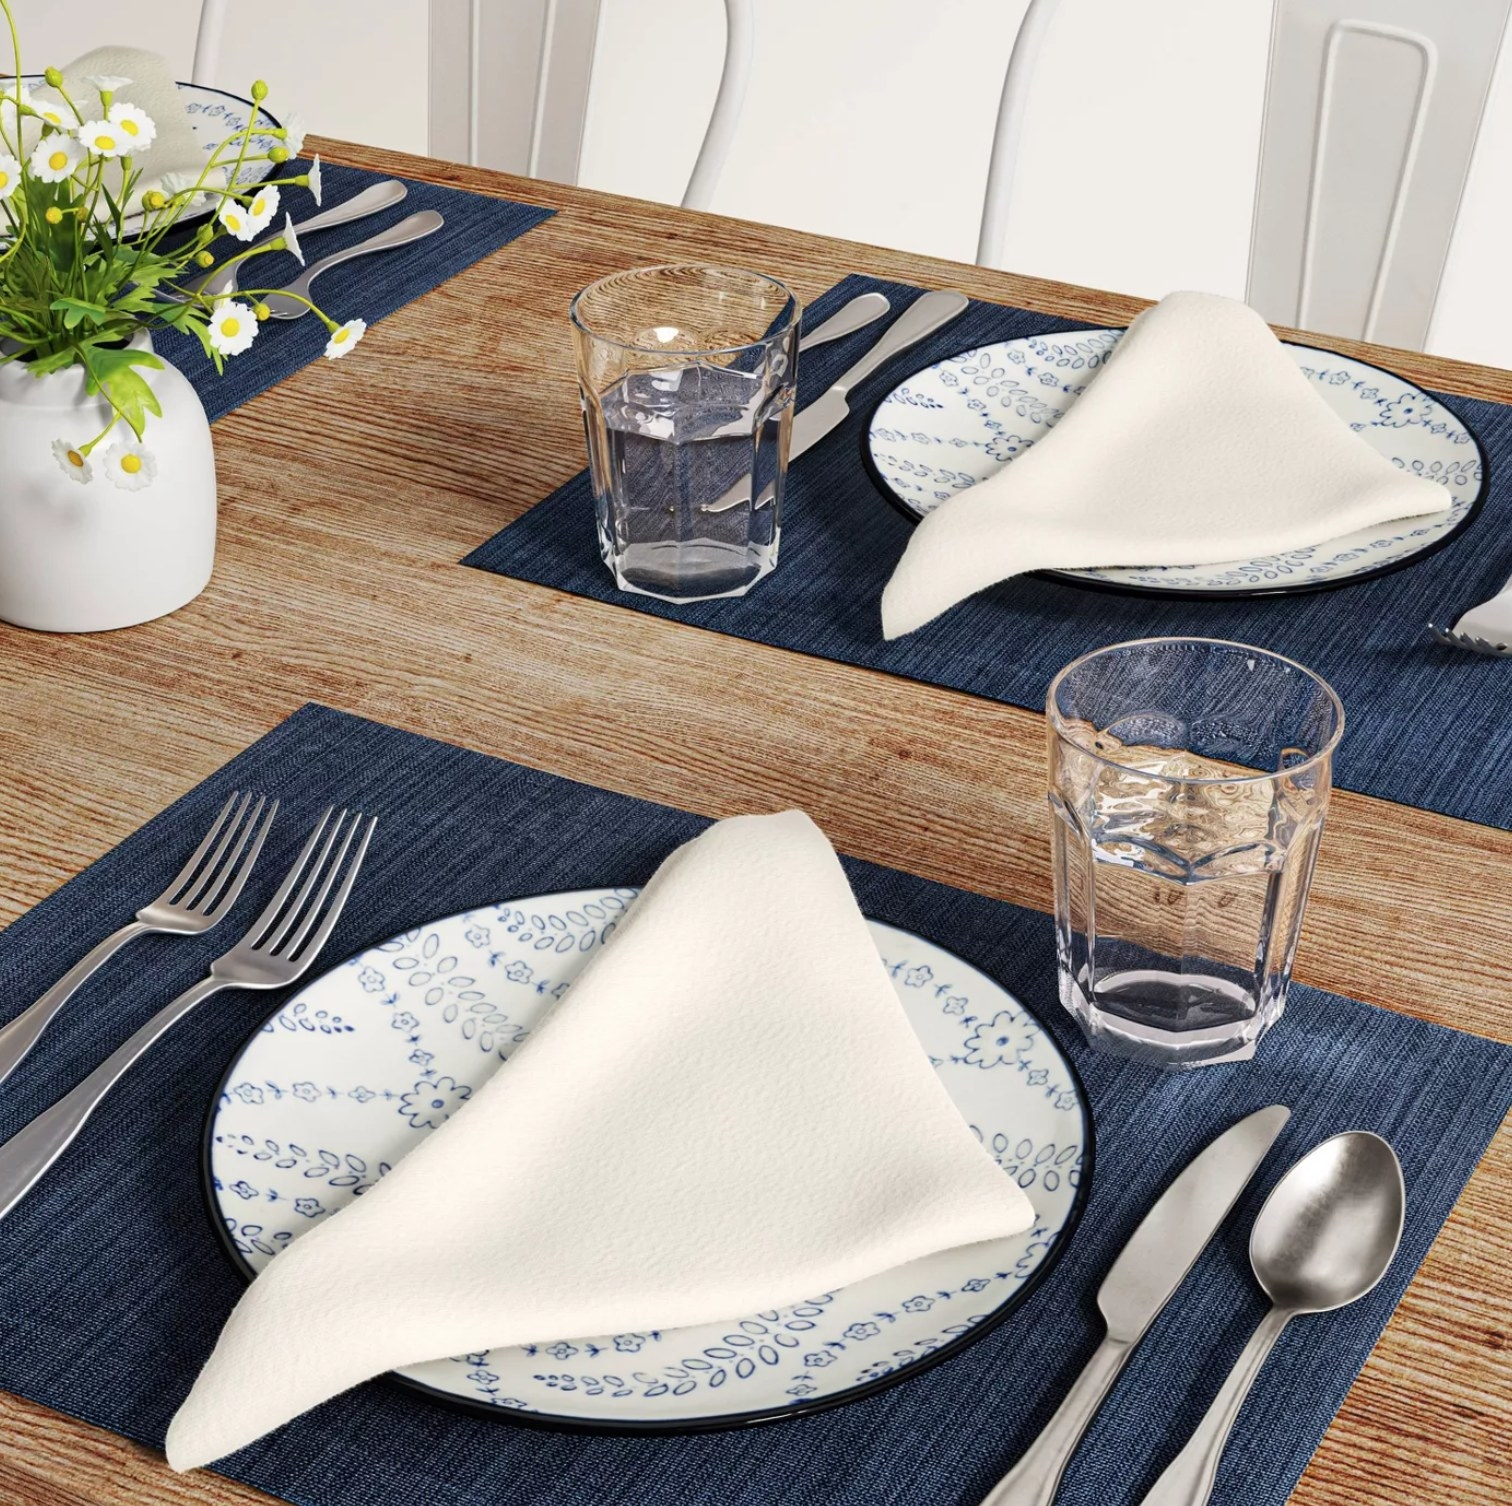 the white cloth napkins on blue and white plates on top of blue placemats with silverware and water glasses on a wooden table